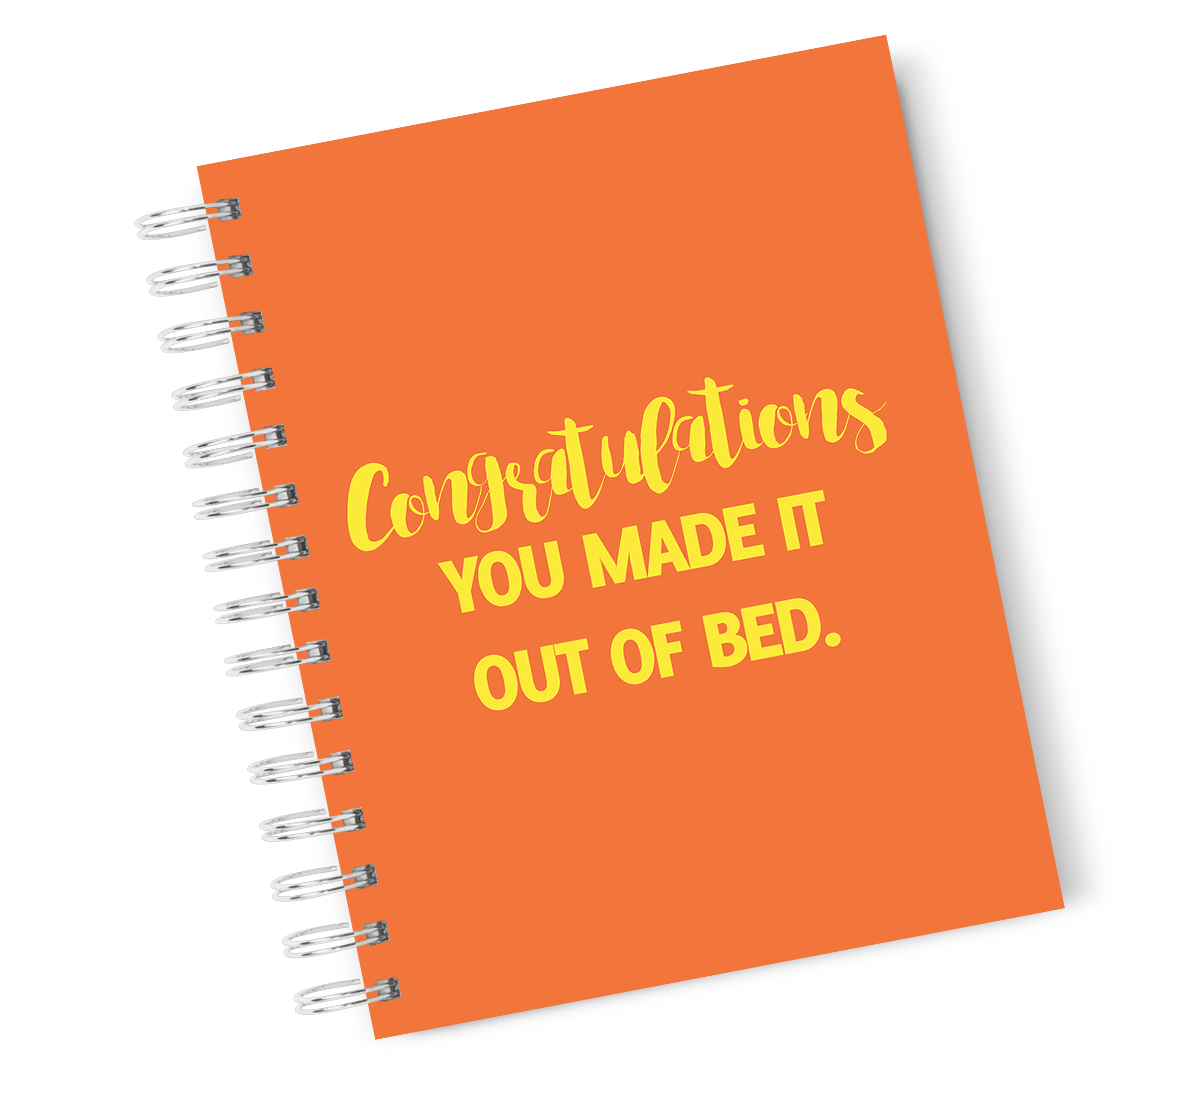 A4 Hardcover Notebook Congrats Out Of Bed Funny Sarcastic Spiral Notebook with High Quality Bright White Paper